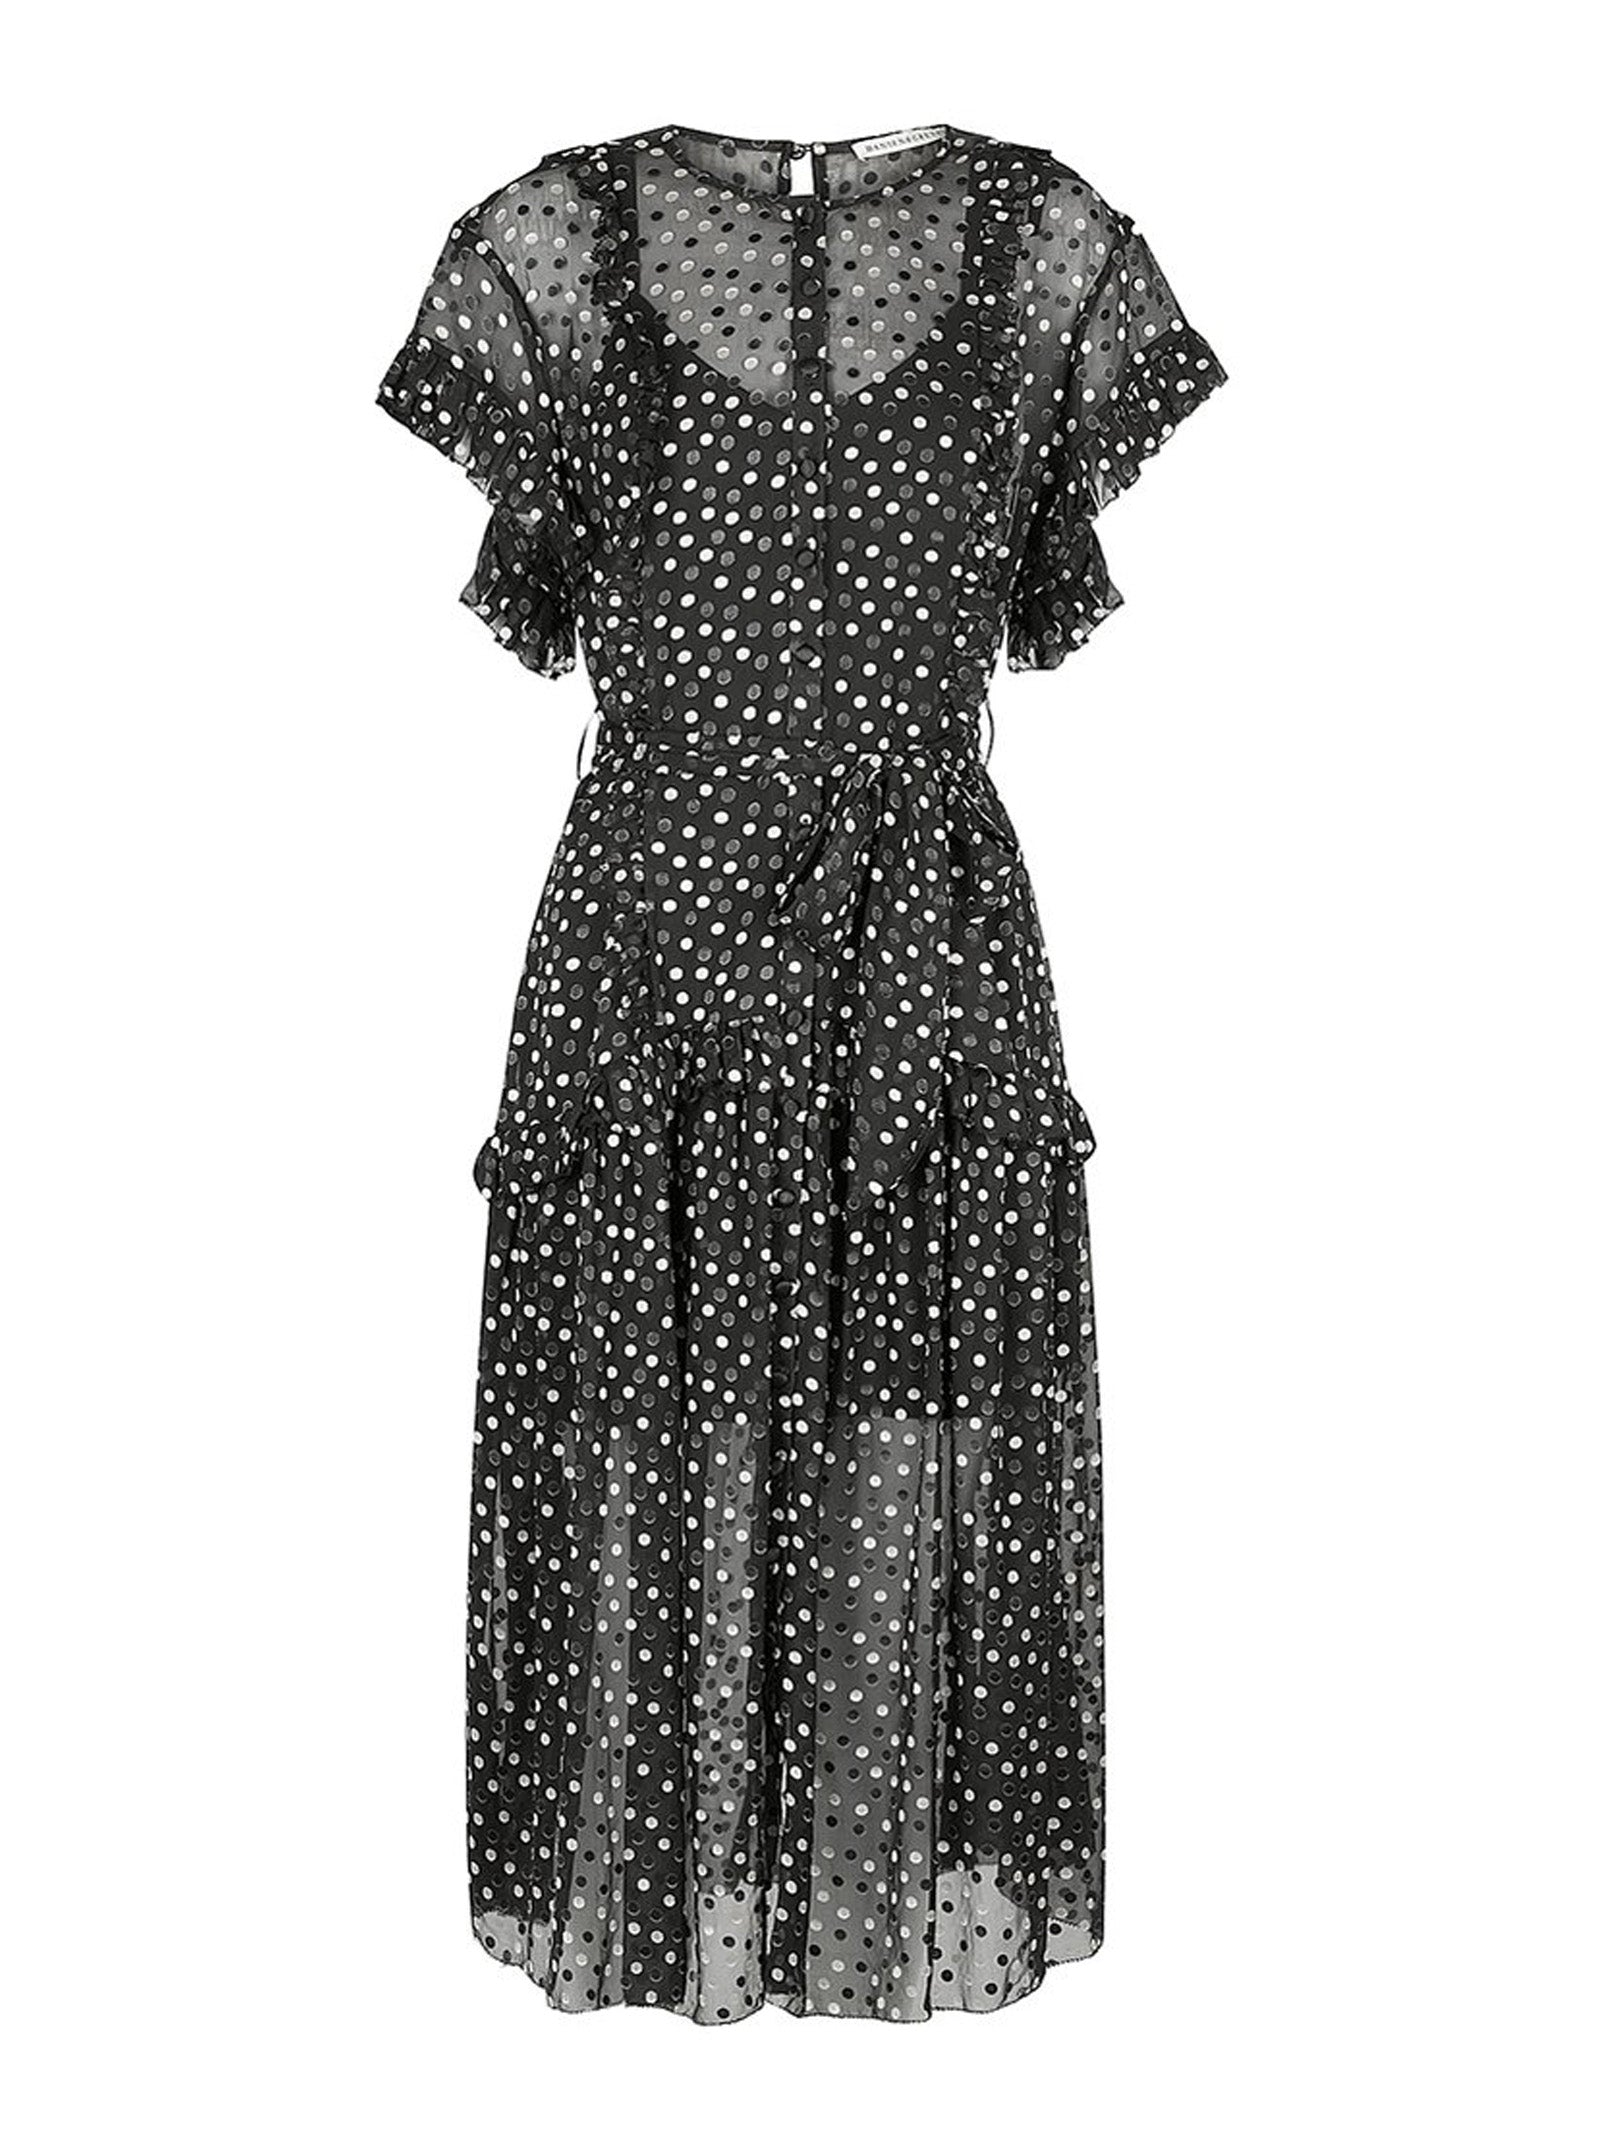 Karen Silk Dress Black Confetti